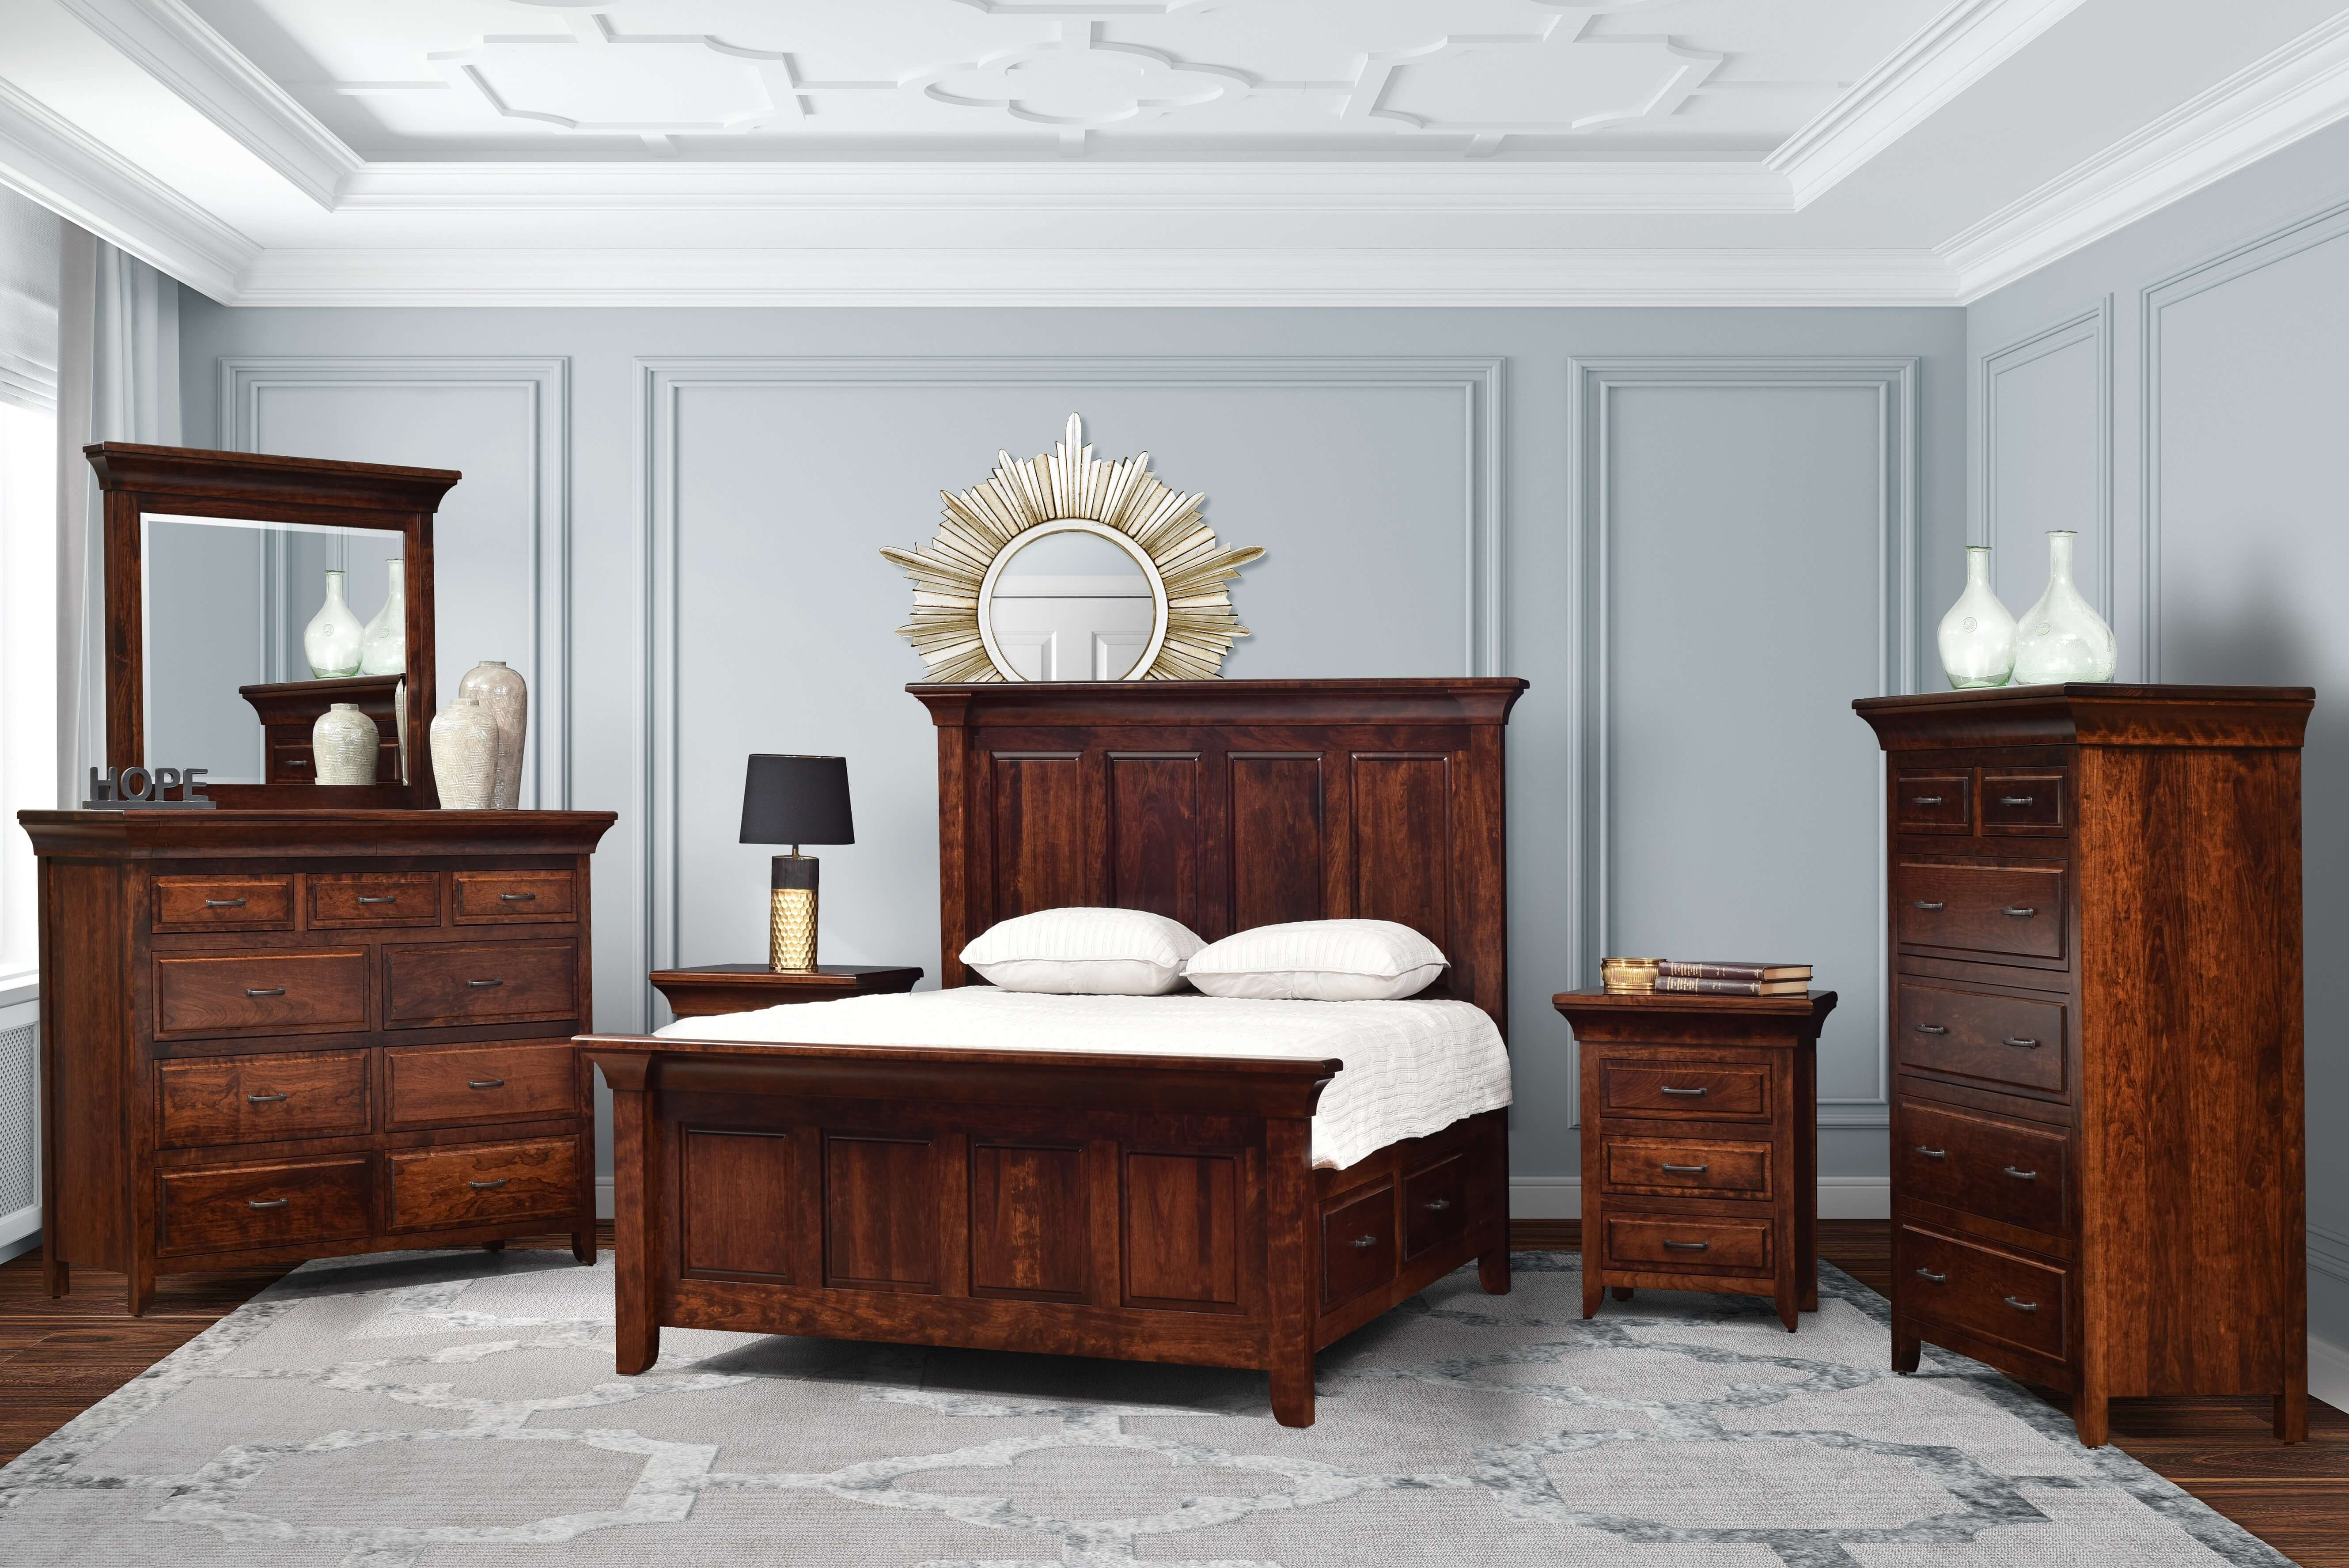 Solid Wood Bedroom Furniture Made In Usa The Amish Home Celebrating 15 Years Of Hardwood Furniture